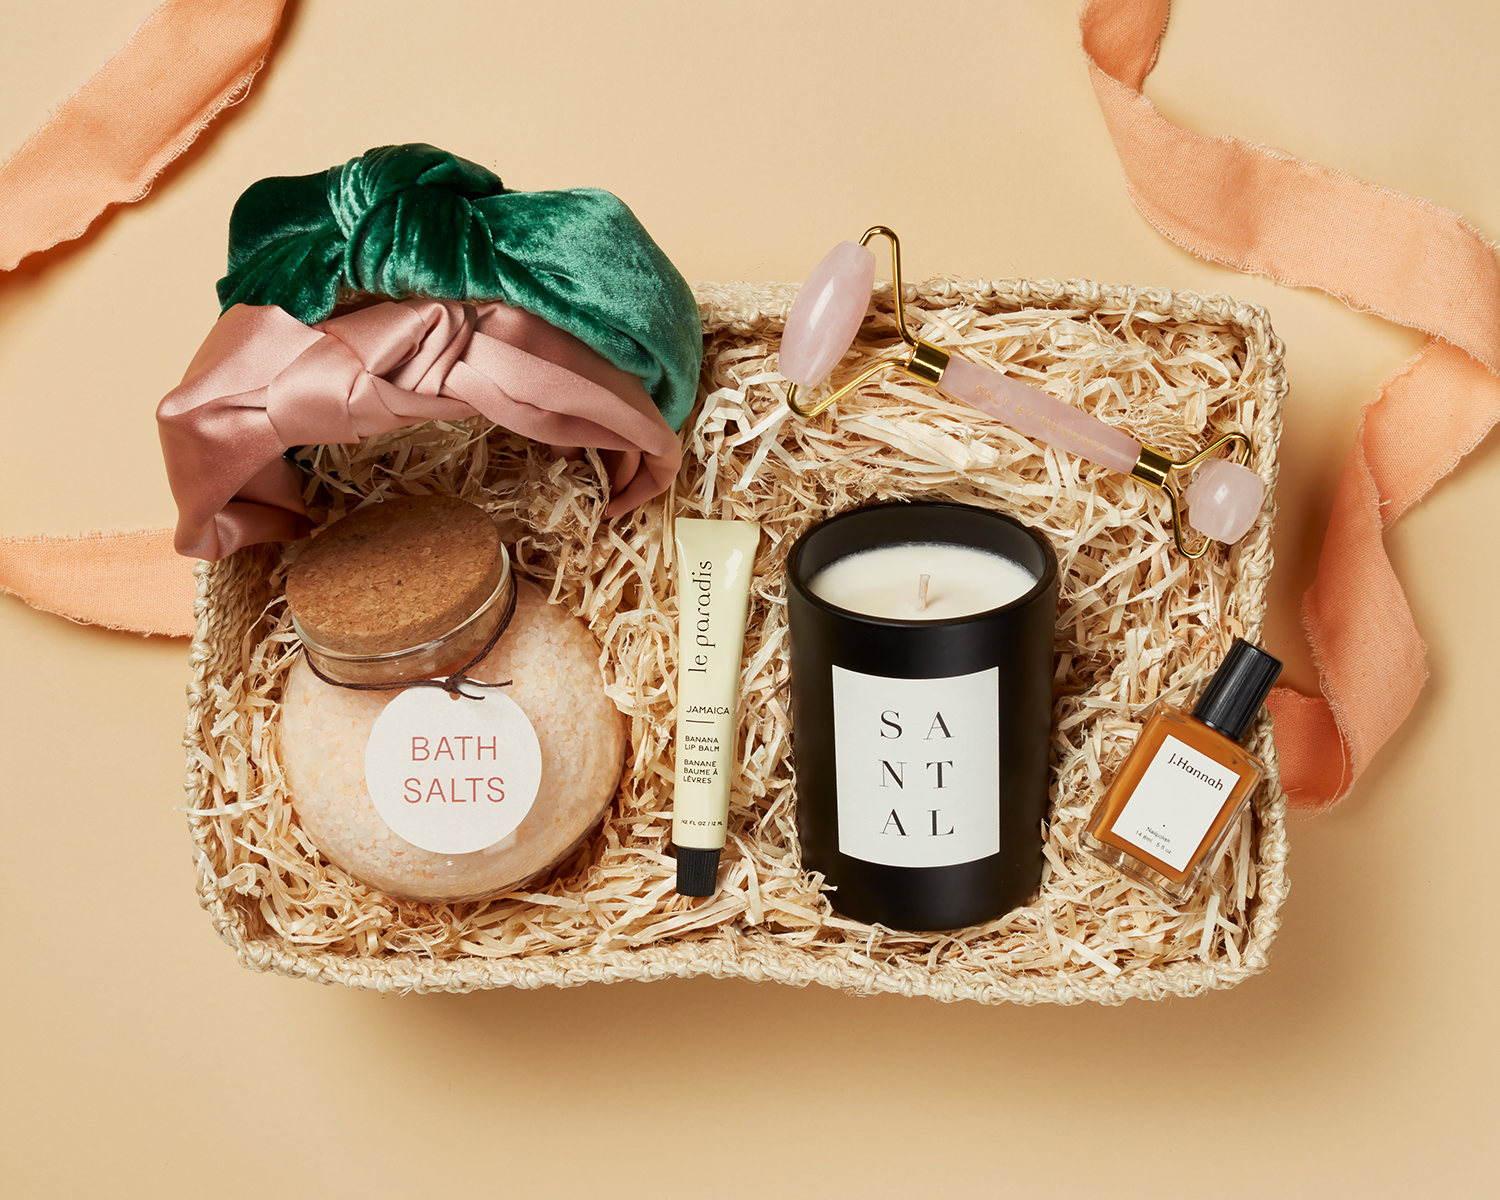 self-care kit with supplies